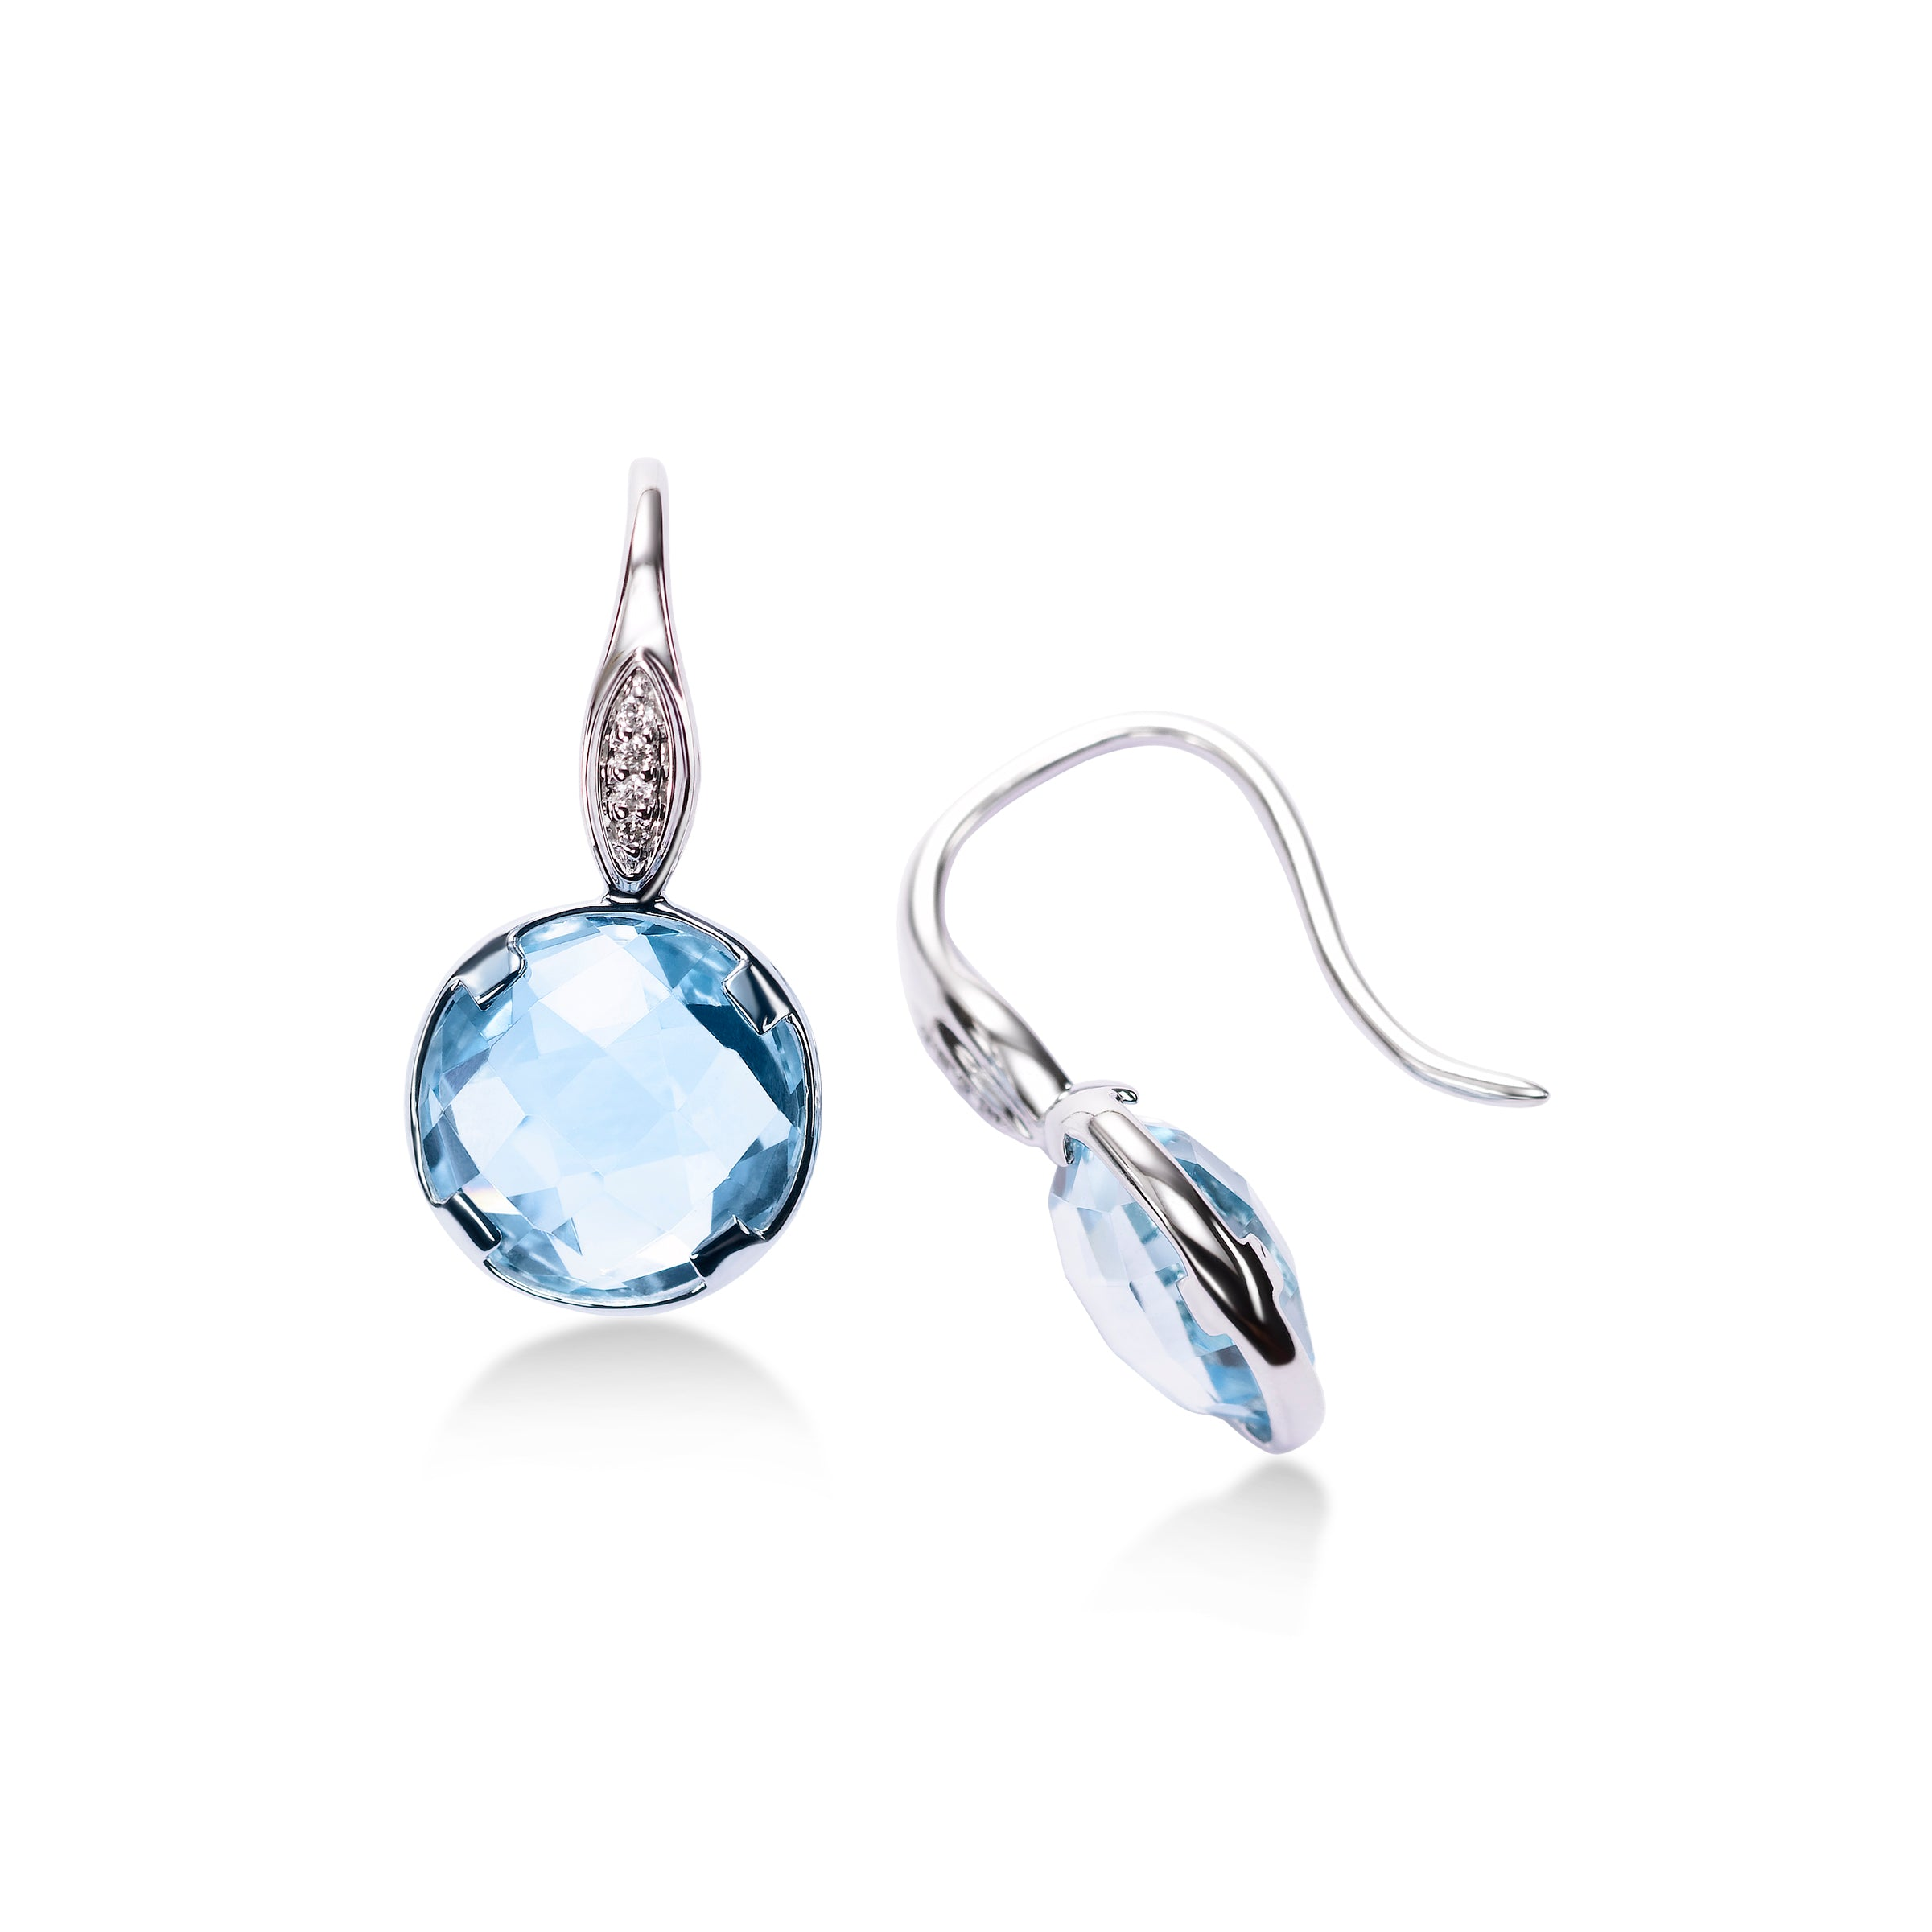 Bezel Set Blue Topaz Drop Earrings, 14K White Gold